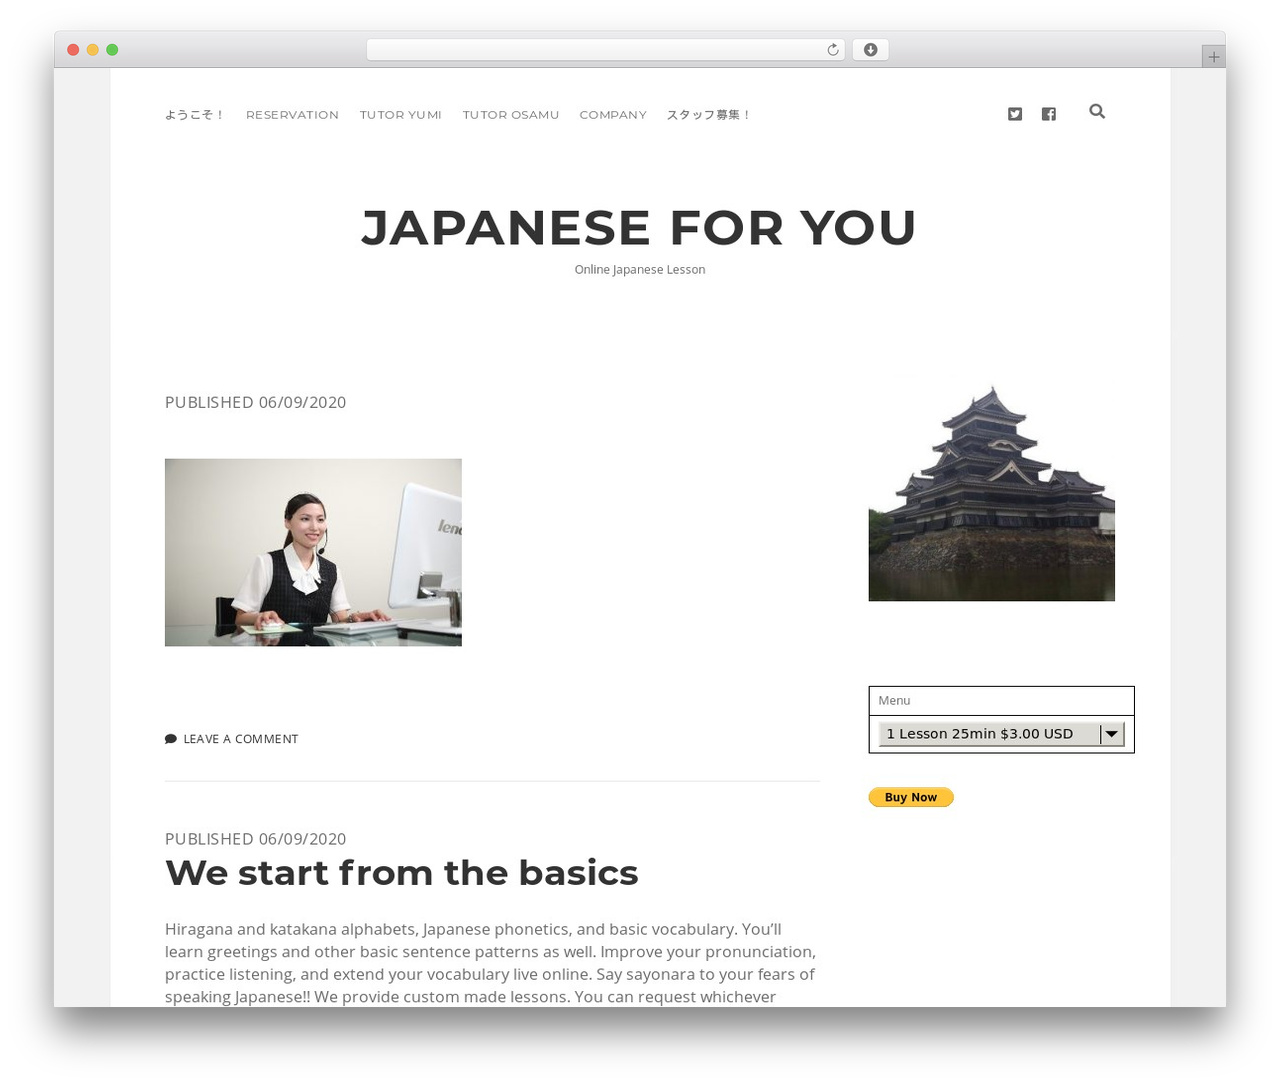 apex best free wordpress theme by compete themes jpn4u com